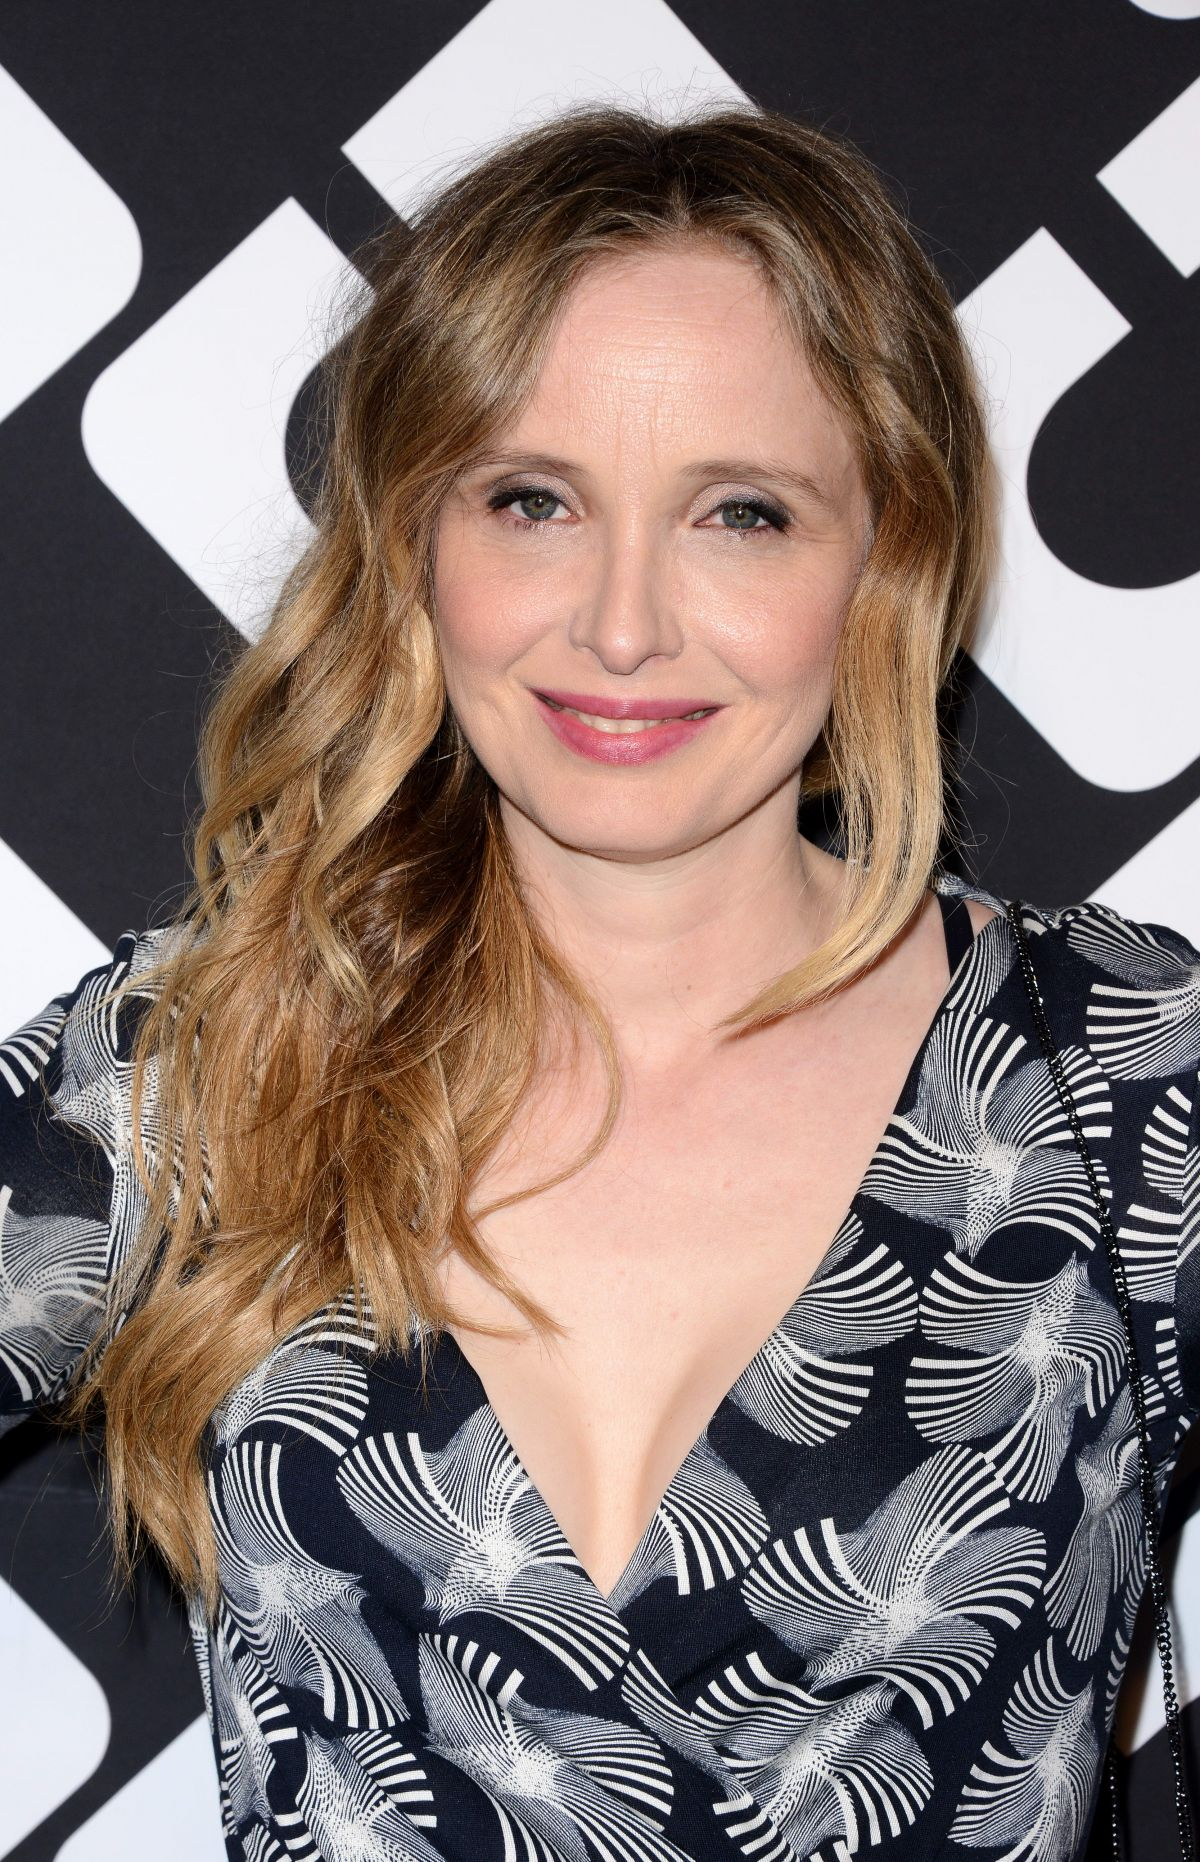 JULIE DELPY at Diane Von Furstenberg's Journey of a Dress Exhibition in Los Angeles